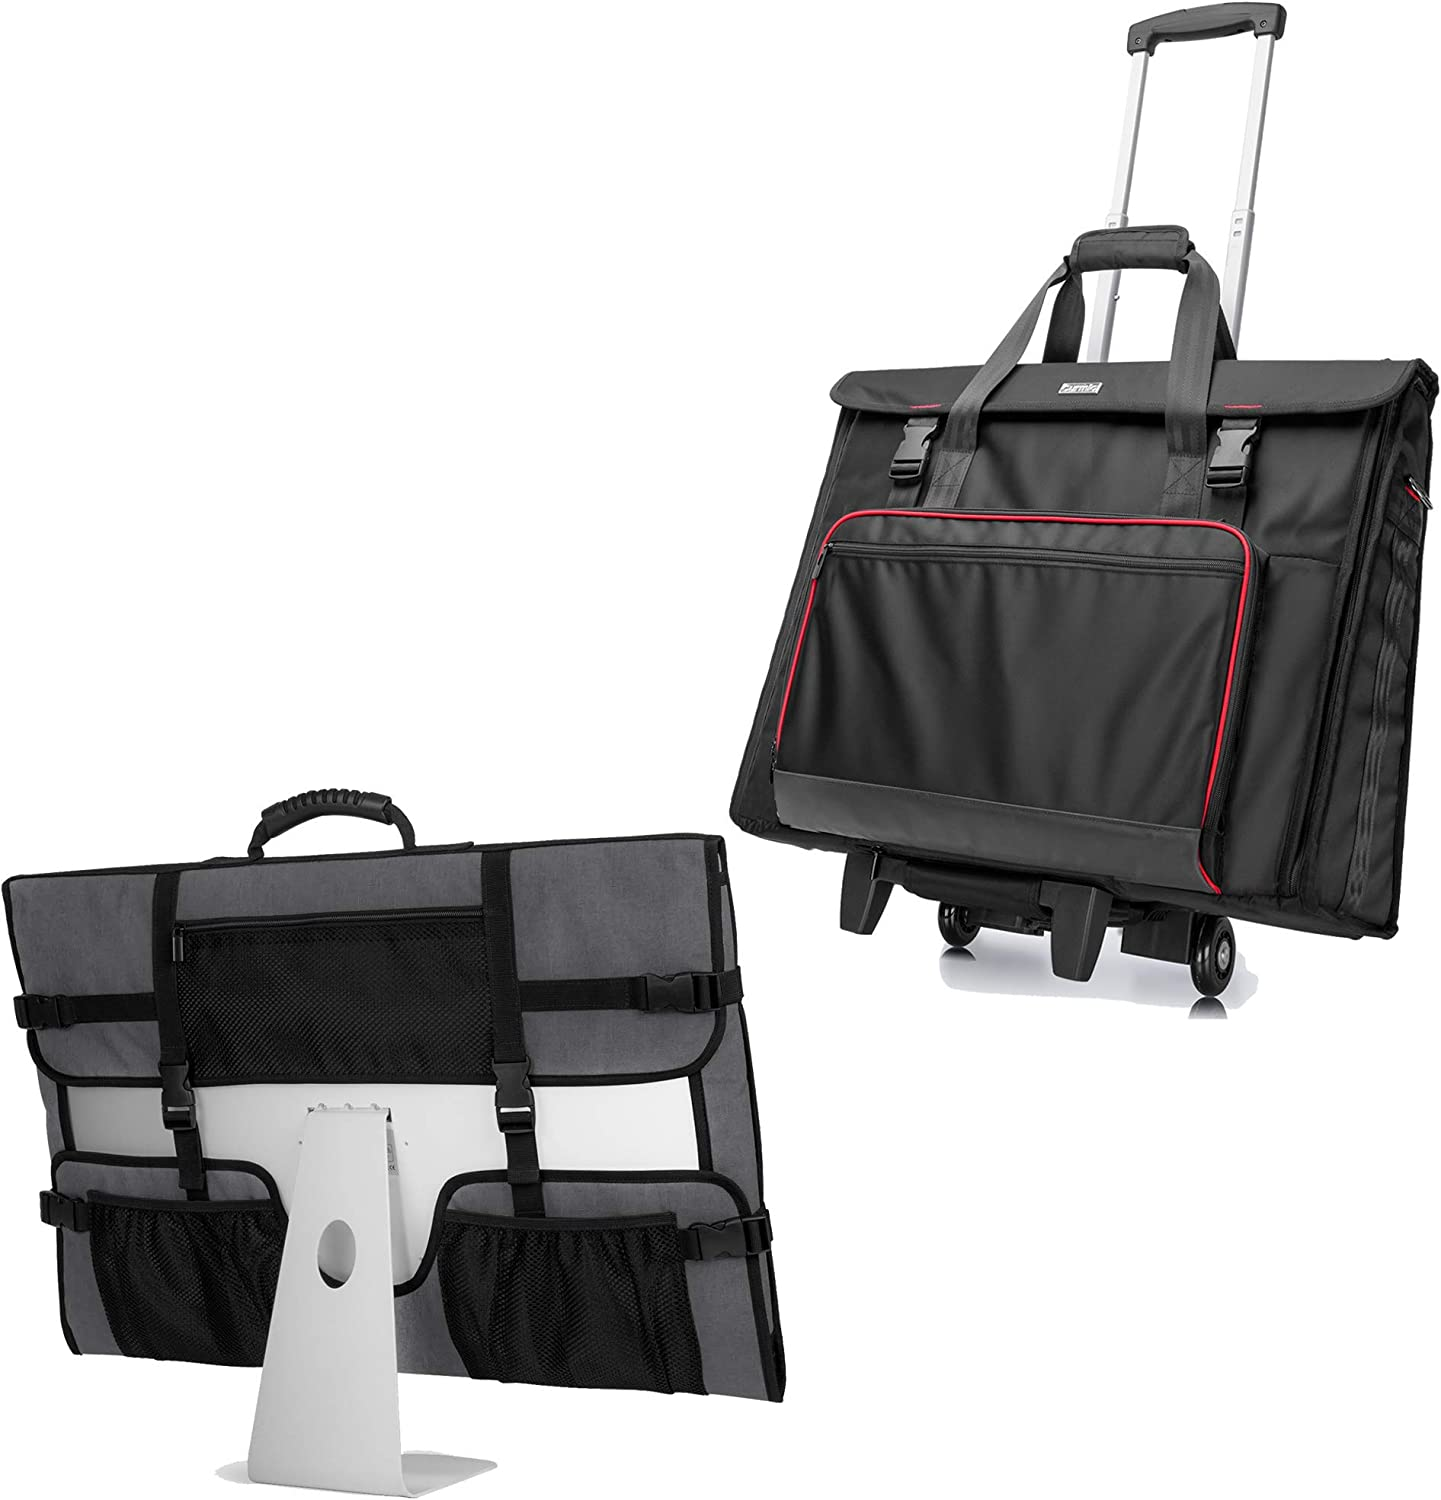 CURMIO Tote Bag with Rubber Handle, Rolling Carrying Bag with Wheels Compatible with Apple iMac 27 inch Desktop Computer, Black, Patented Design